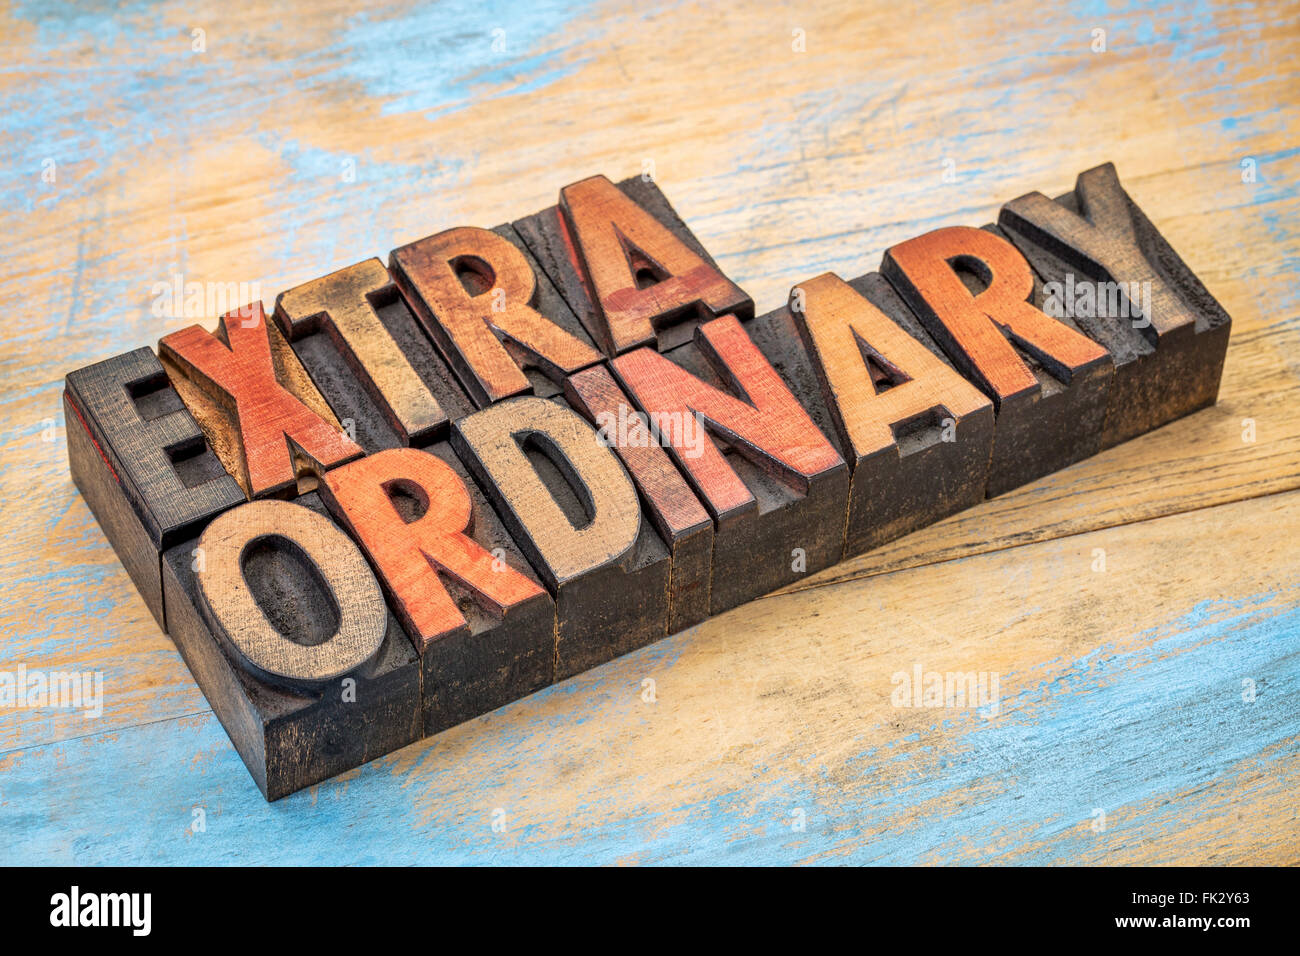 extraordinary word abstract in vintage letterpress wood type printing blocks stained by color inks - Stock Image